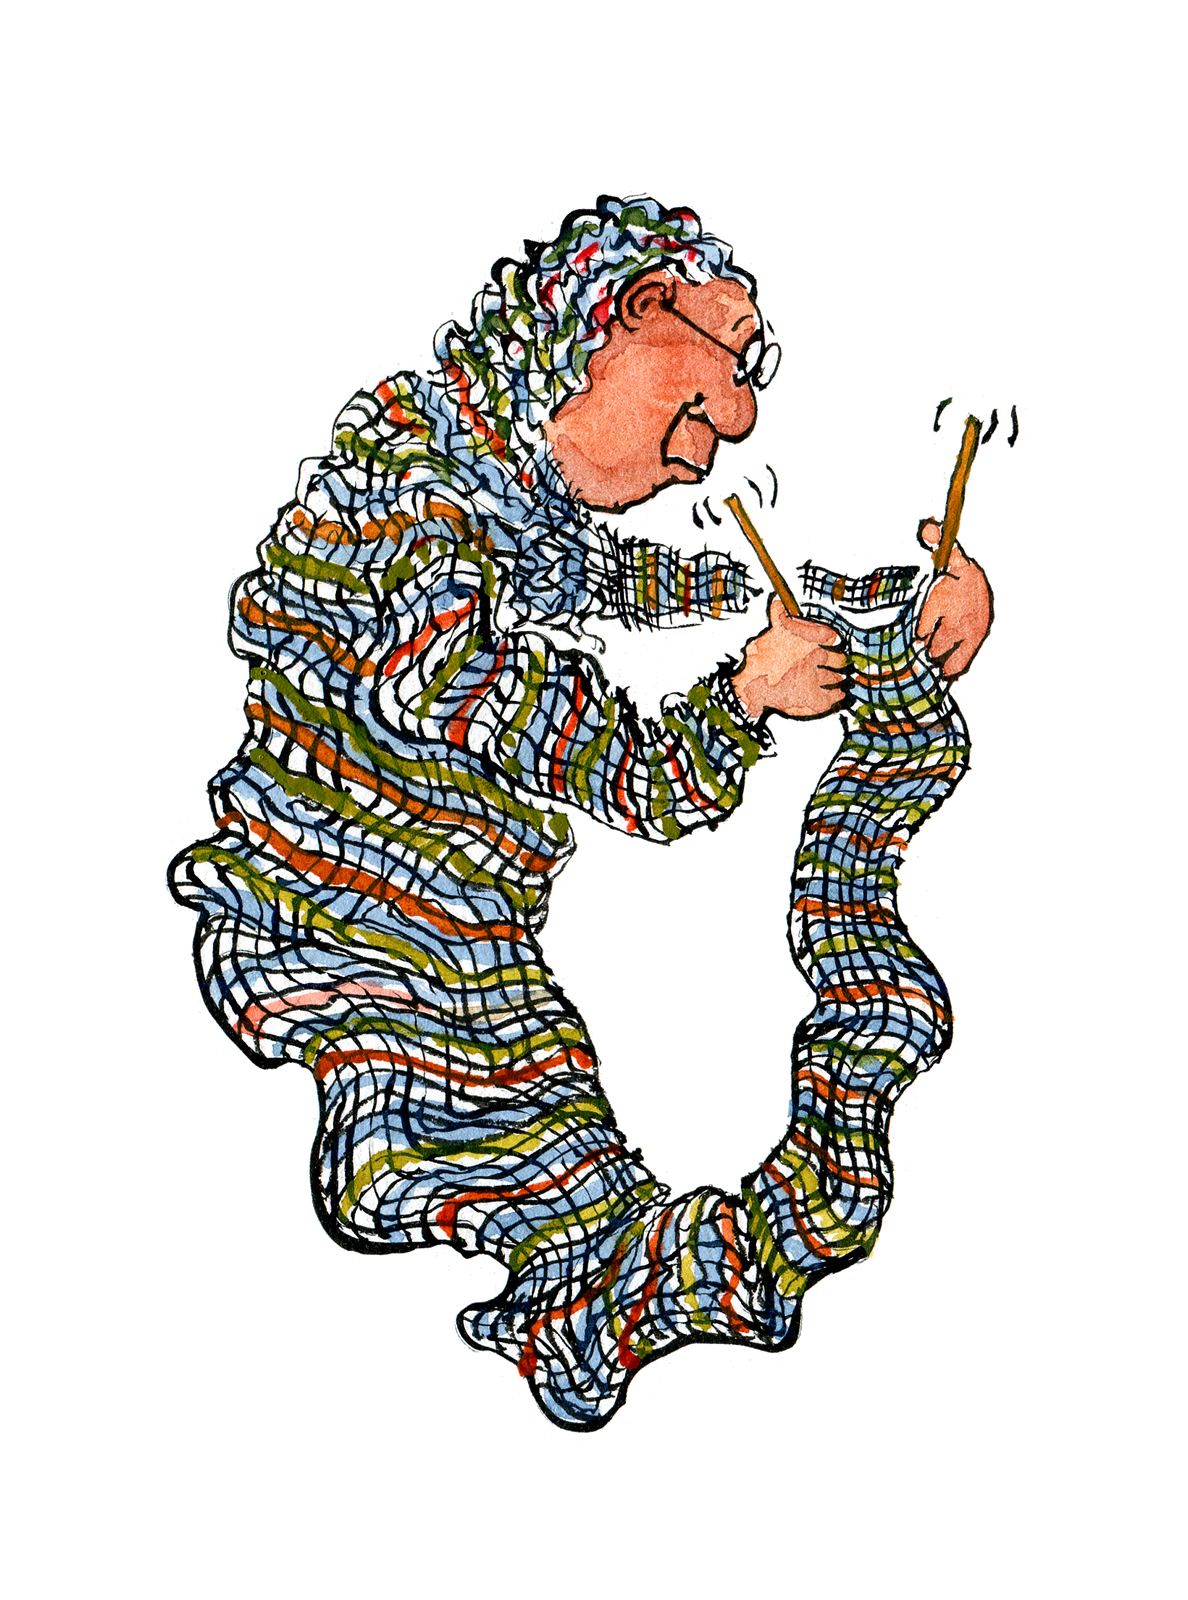 Old Lady Knitting Images : Old lady knitting my art thoughts and notes